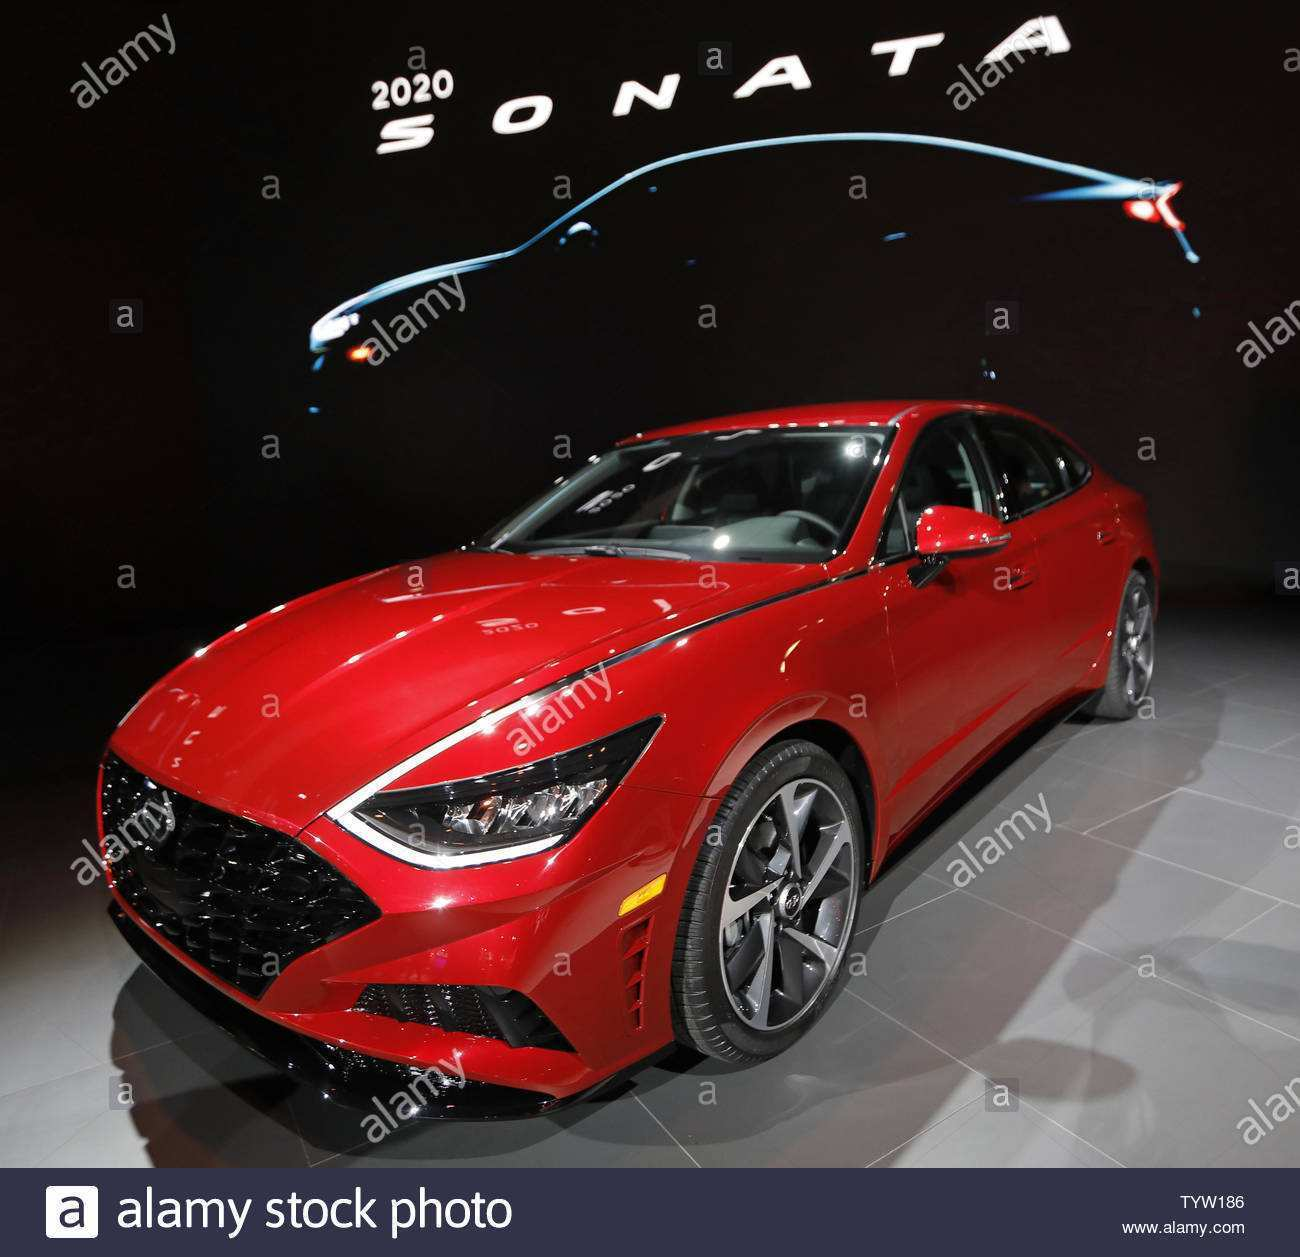 63 New New York Auto Show 2020 Hyundai Model